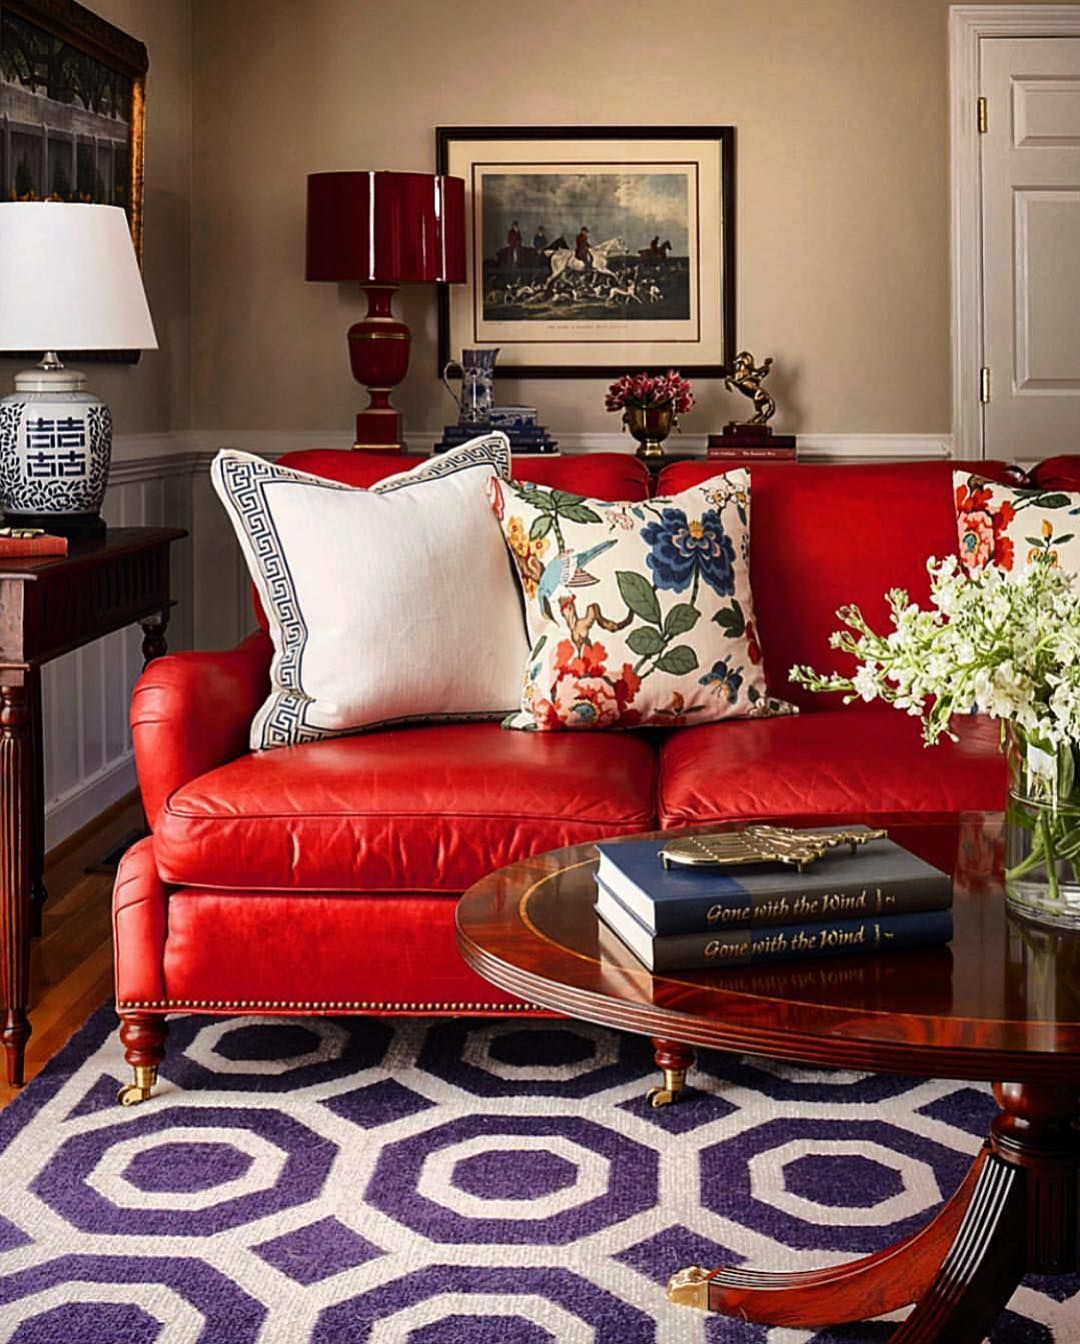 Delightful Living Room Featuring This Marvelous Red Sofa Interior Design By The Talen Red Leather Sofa Living Room Red Sofa Living Room Red Couch Living Room